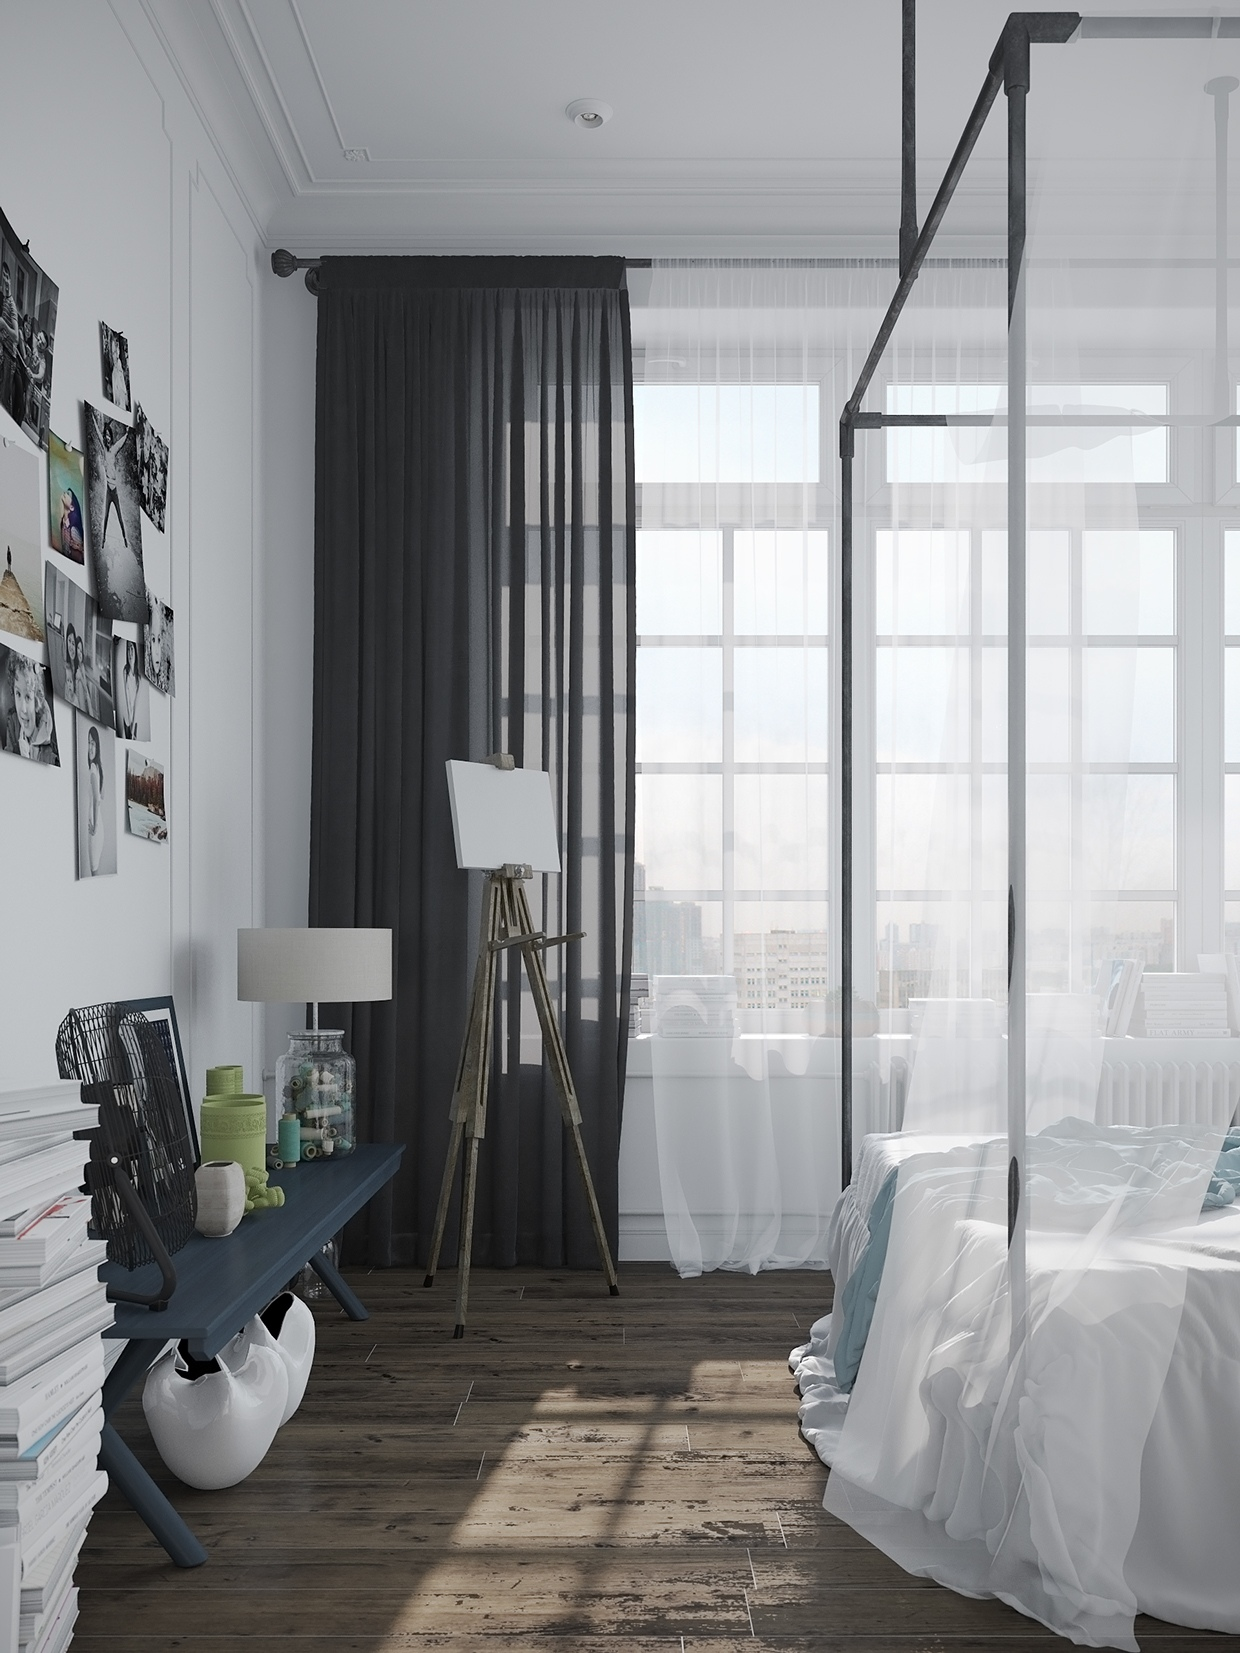 Stylish scandinavian apartment in murmansk Industrial scandinavian bedroom